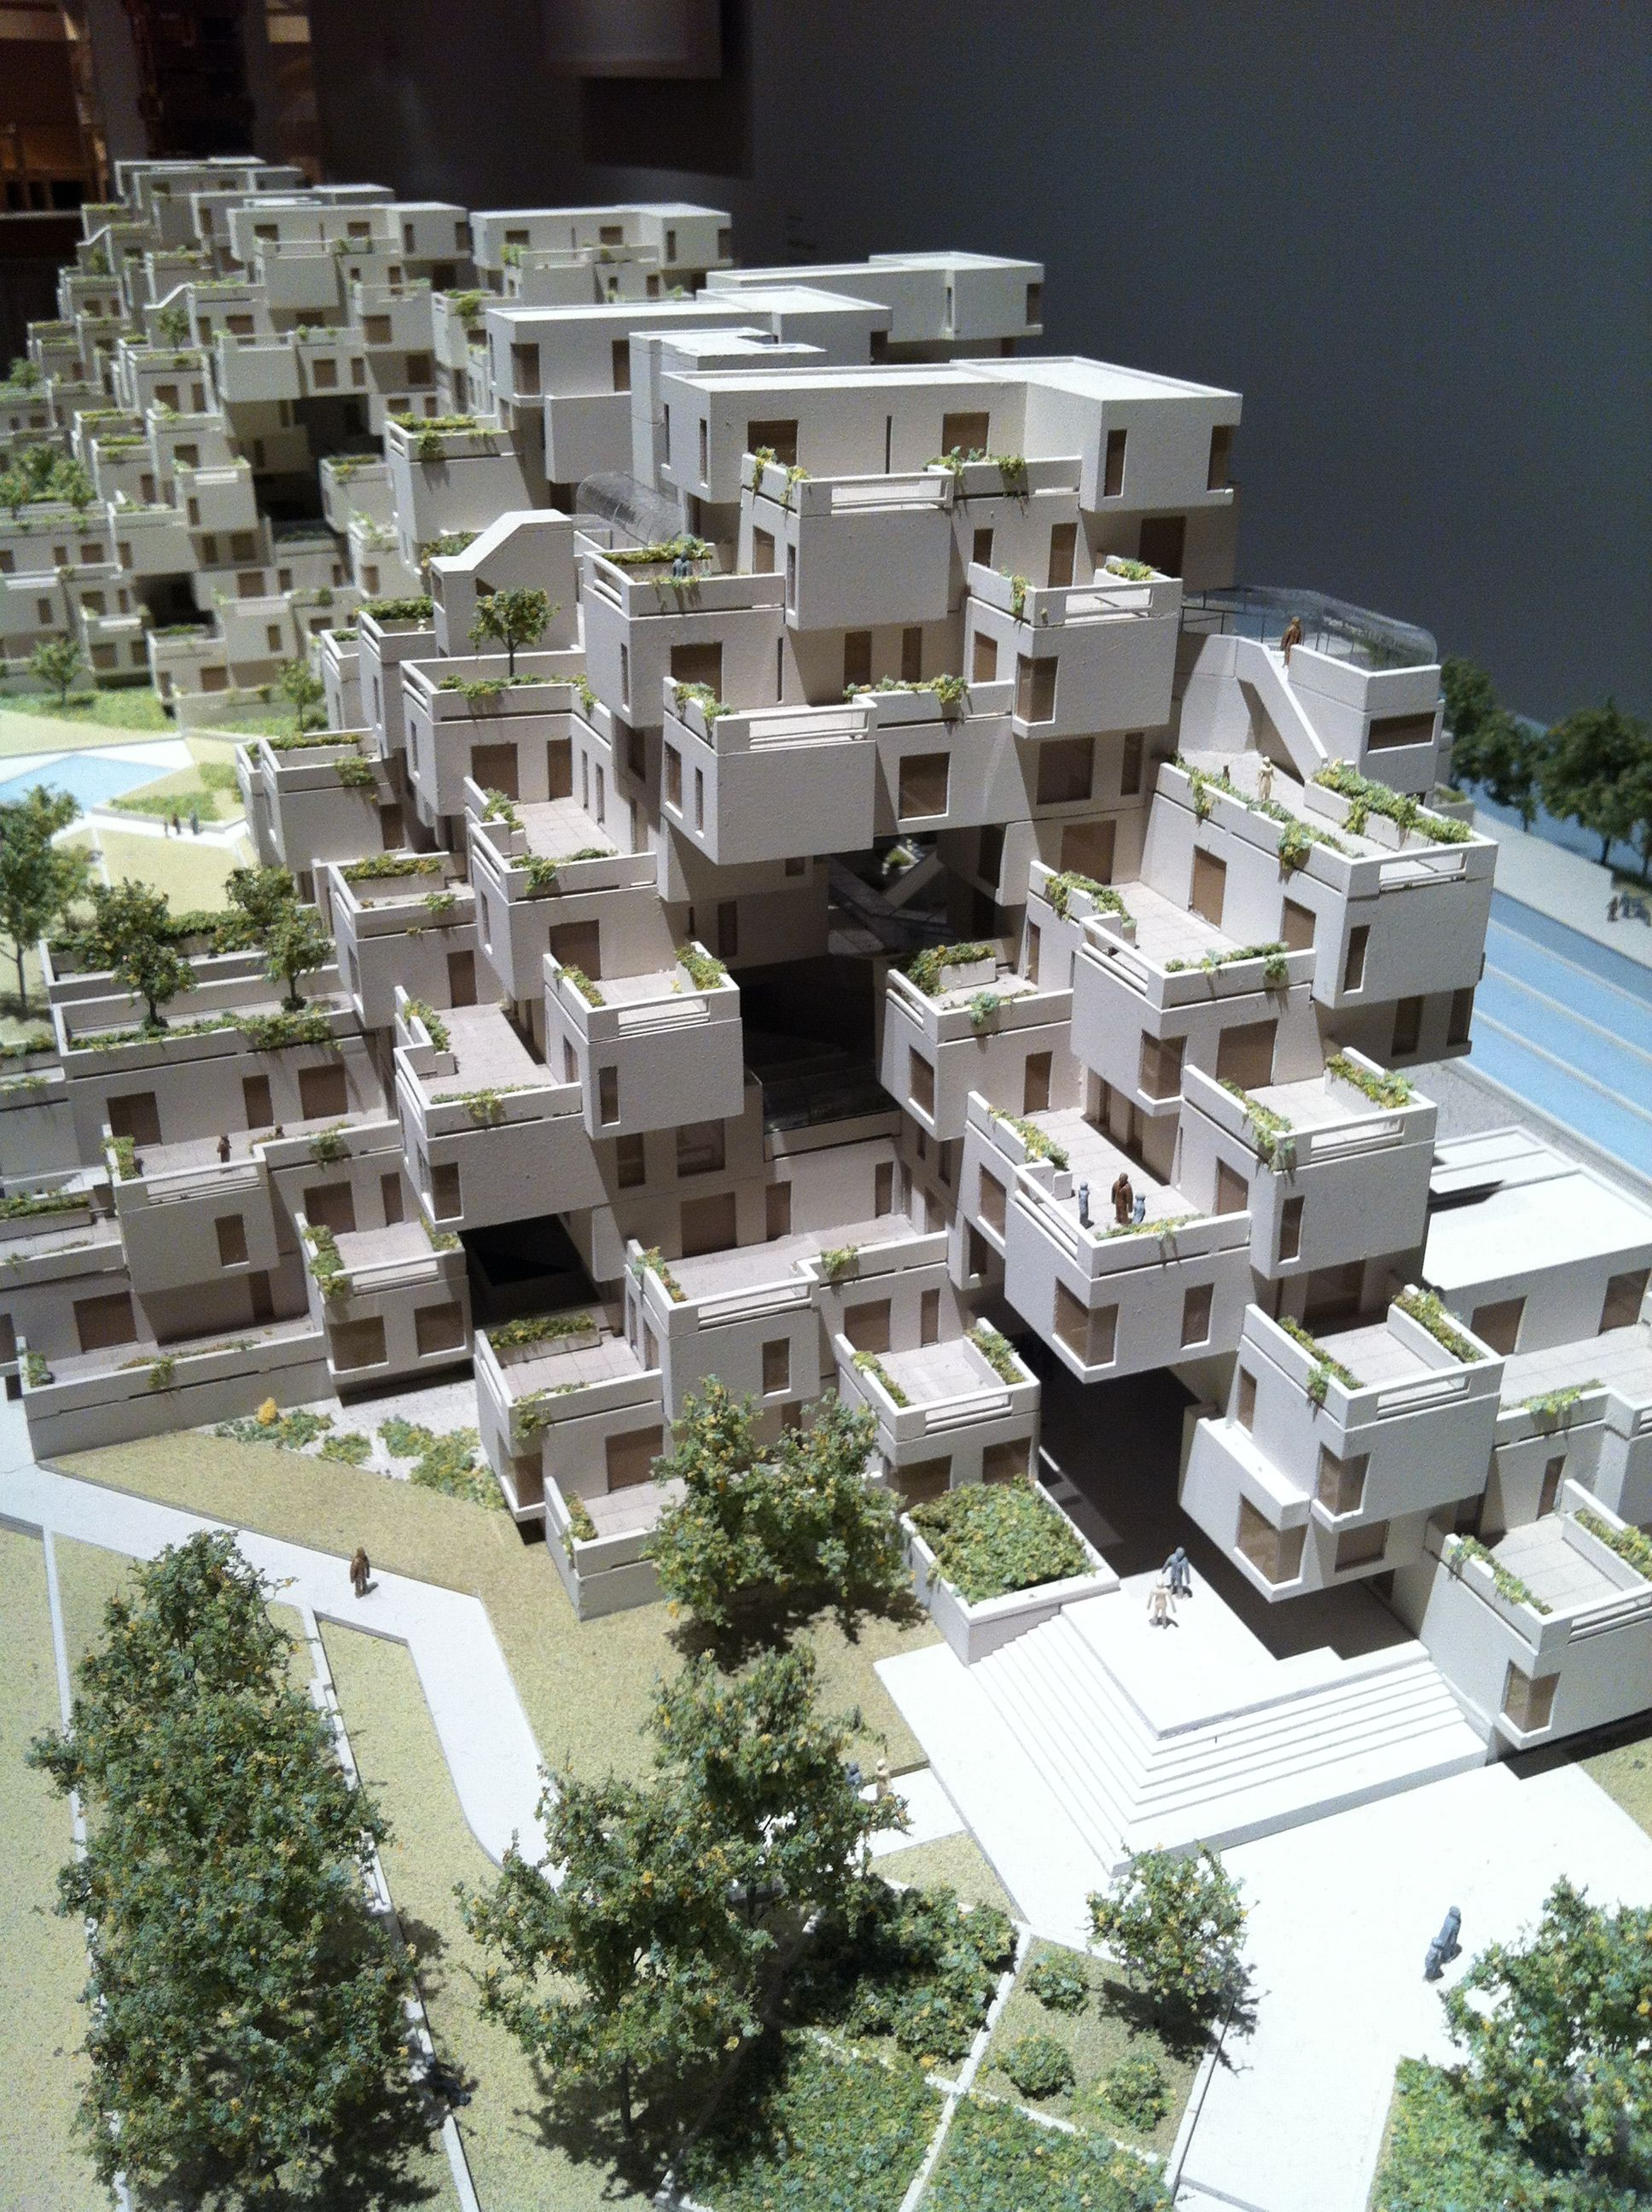 Moshe safdie habitat67 housing complex montreal expo for Habitat 67 architecture